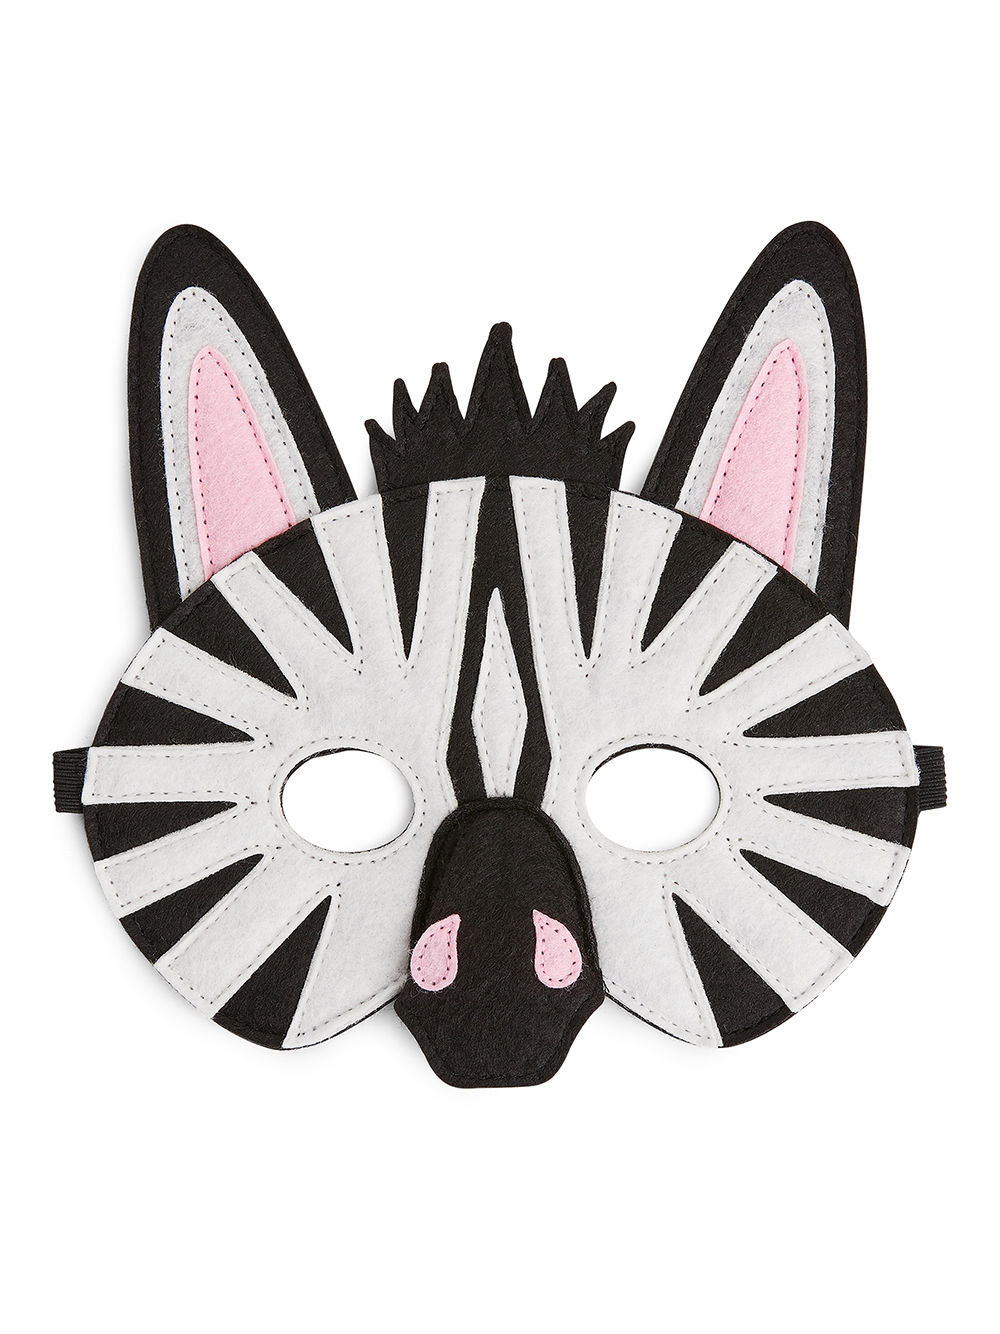 Fabric Swatch image of Arket animal mask in white